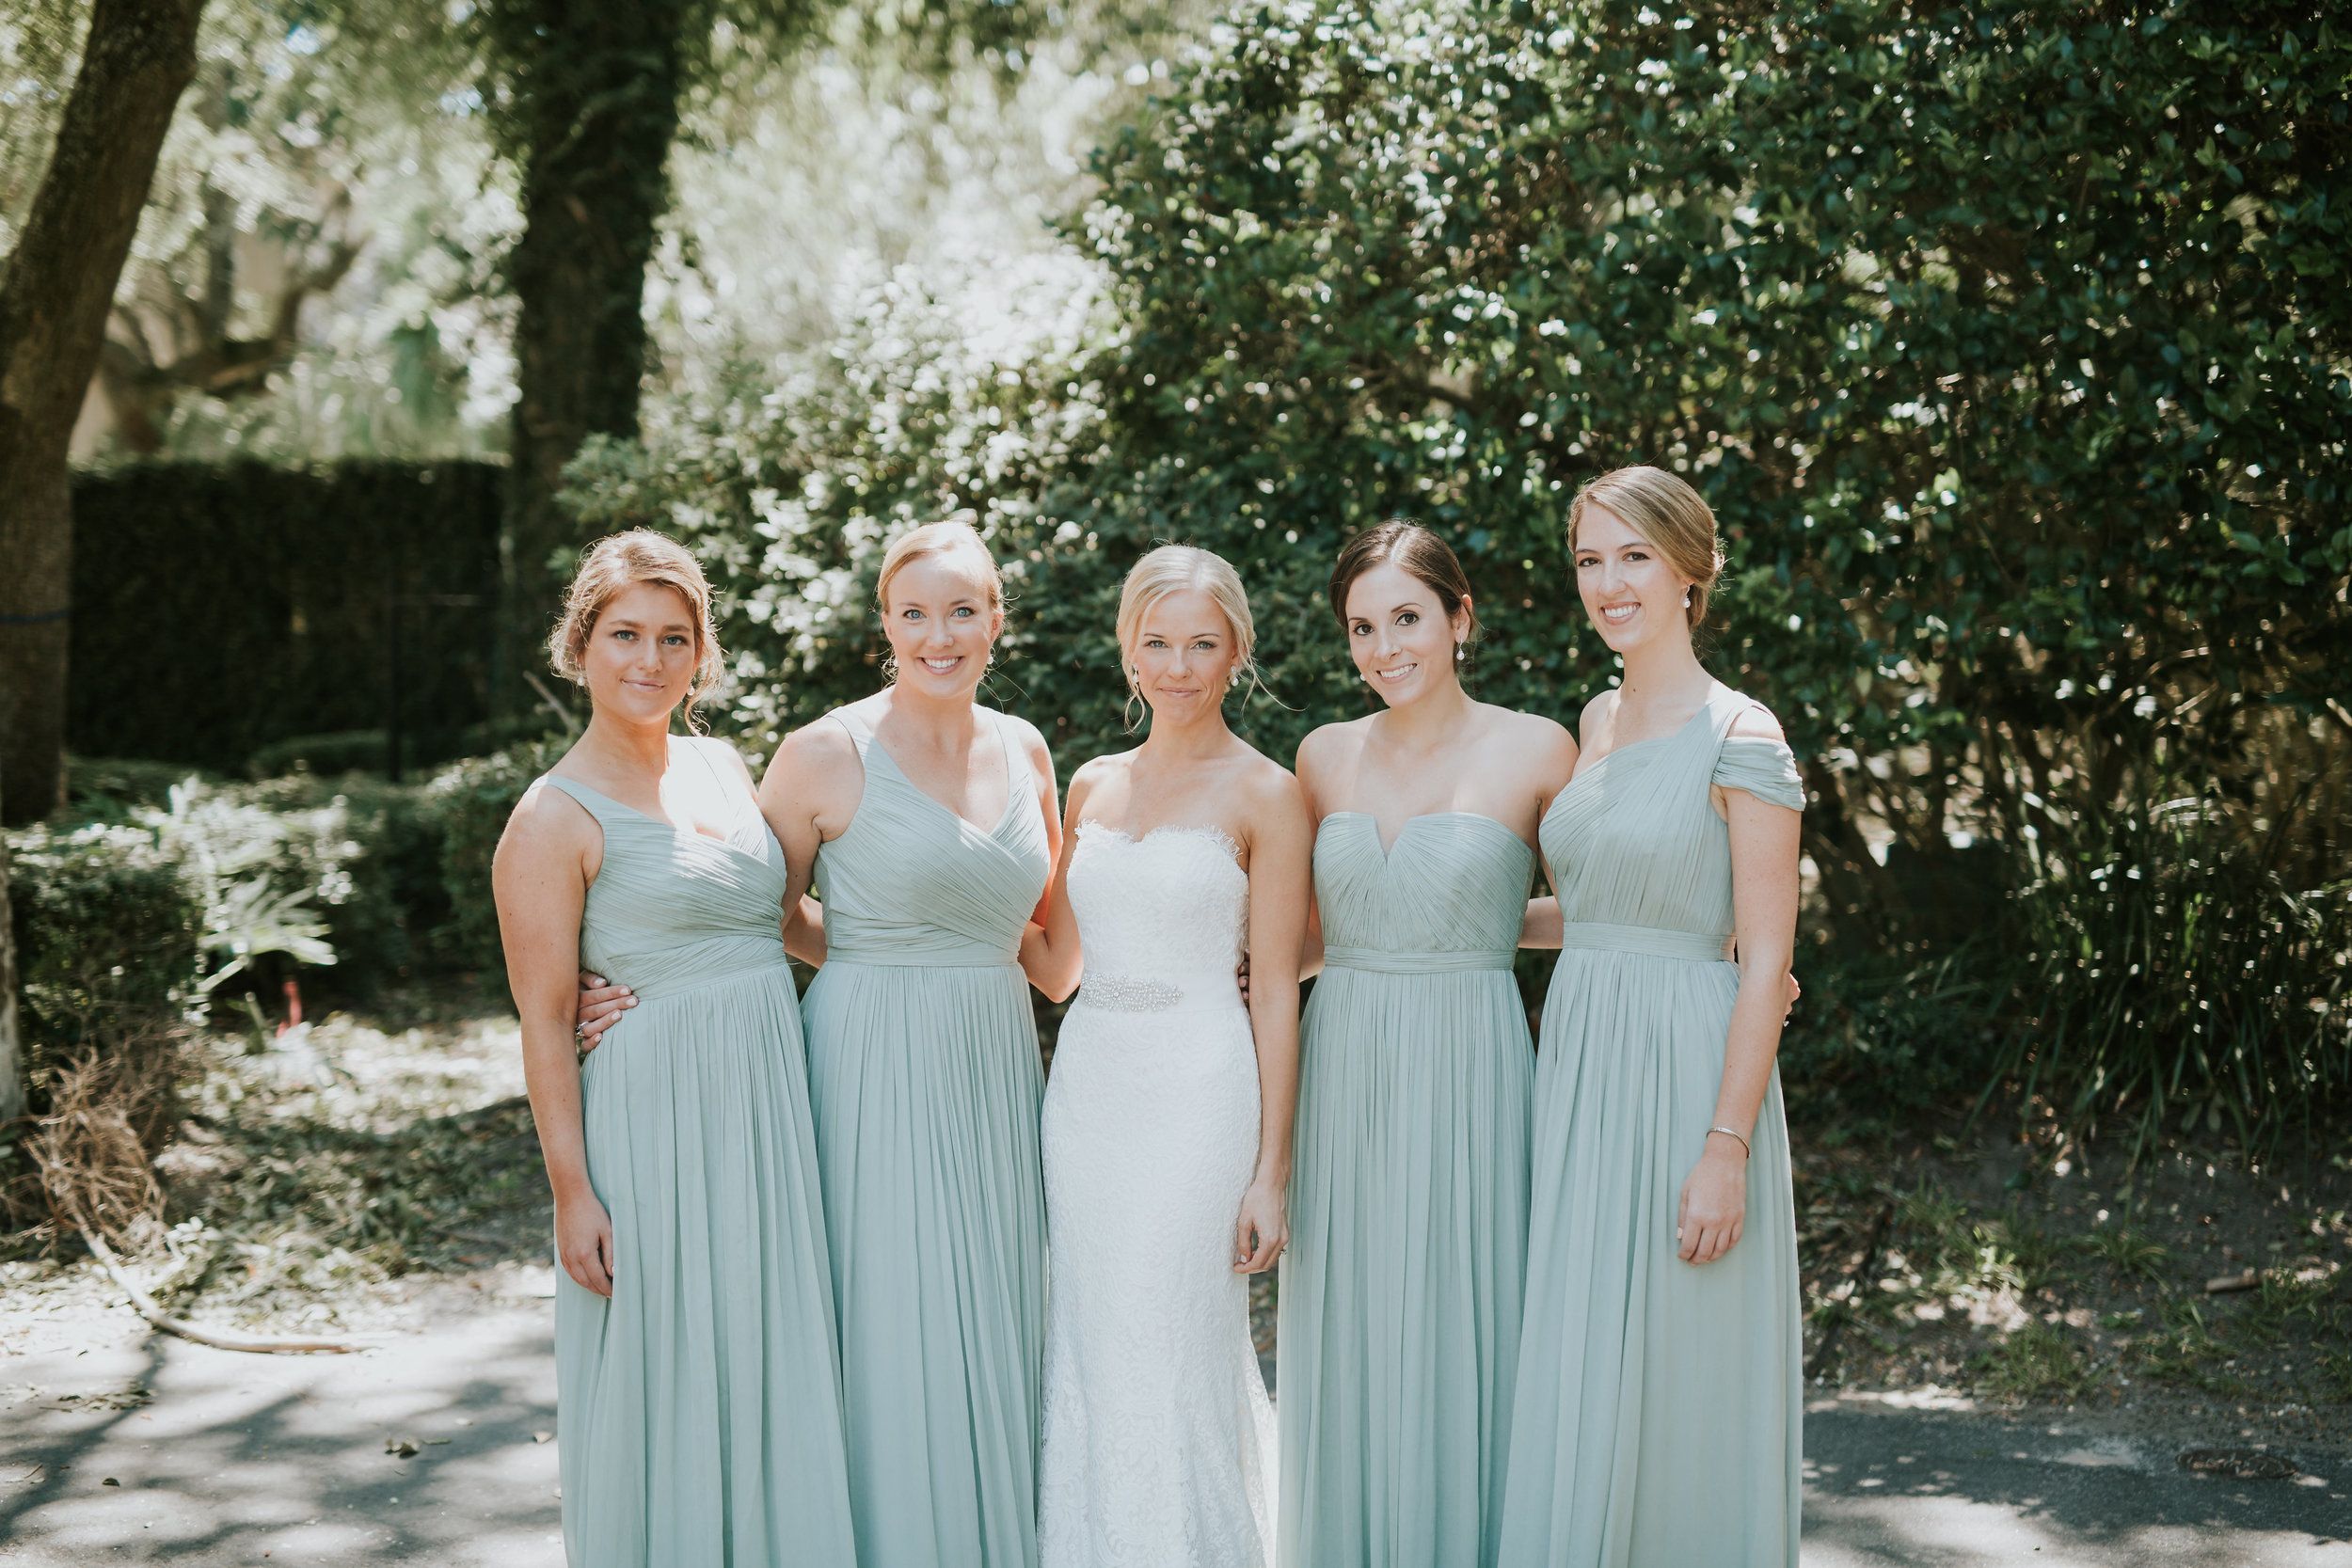 Bridesmaids in long sage J. Crew dresses  //  Hilton head wedding photography by Carrie Friesen